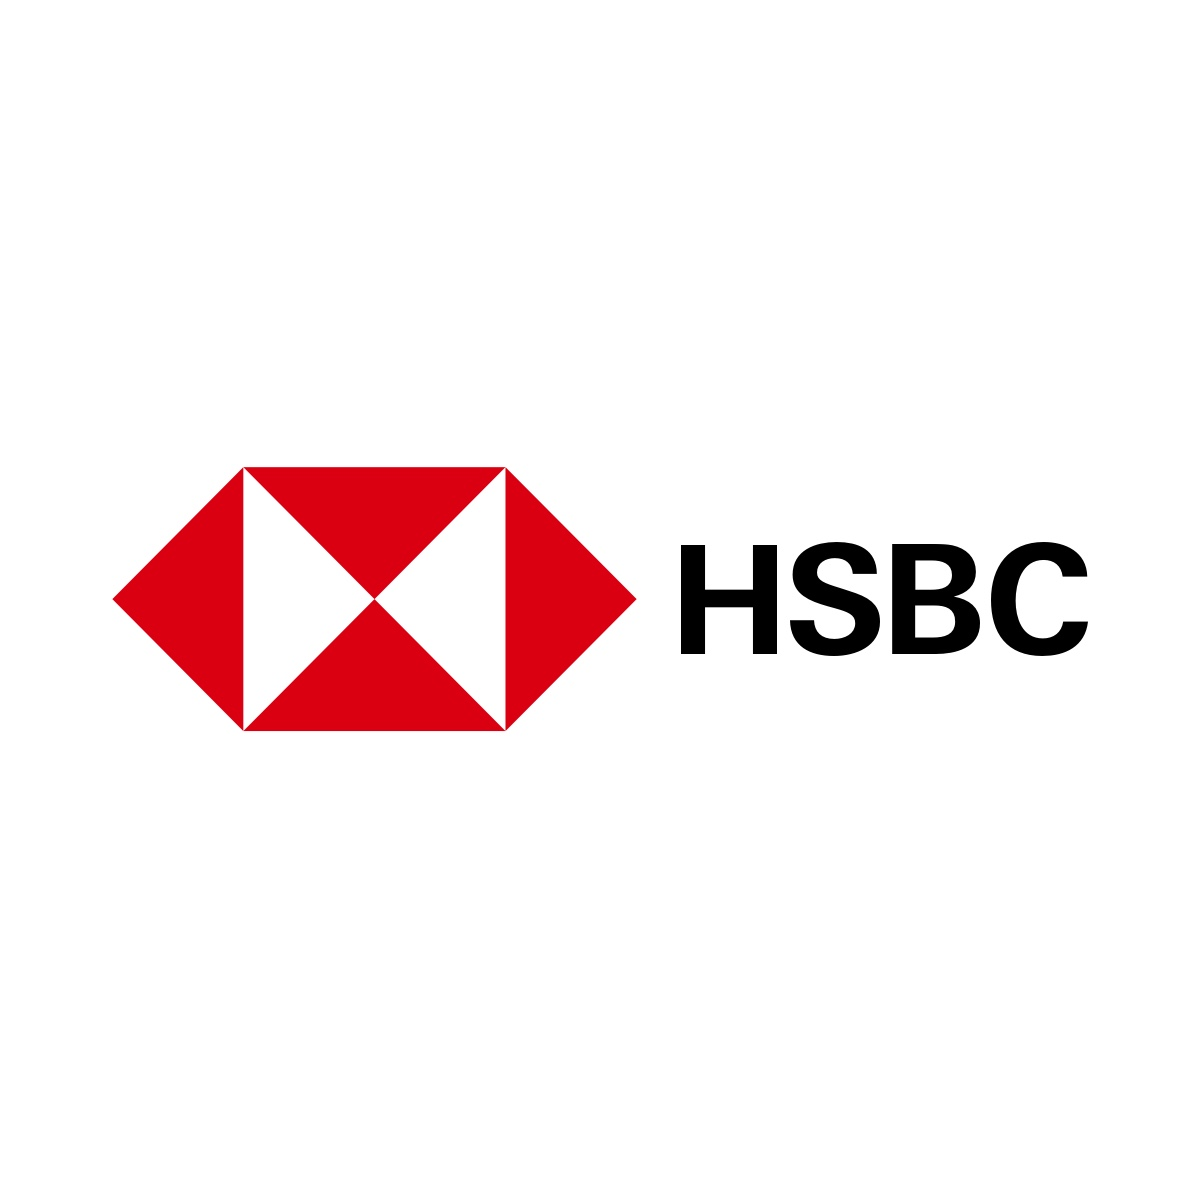 ways to bank - hsbc qa